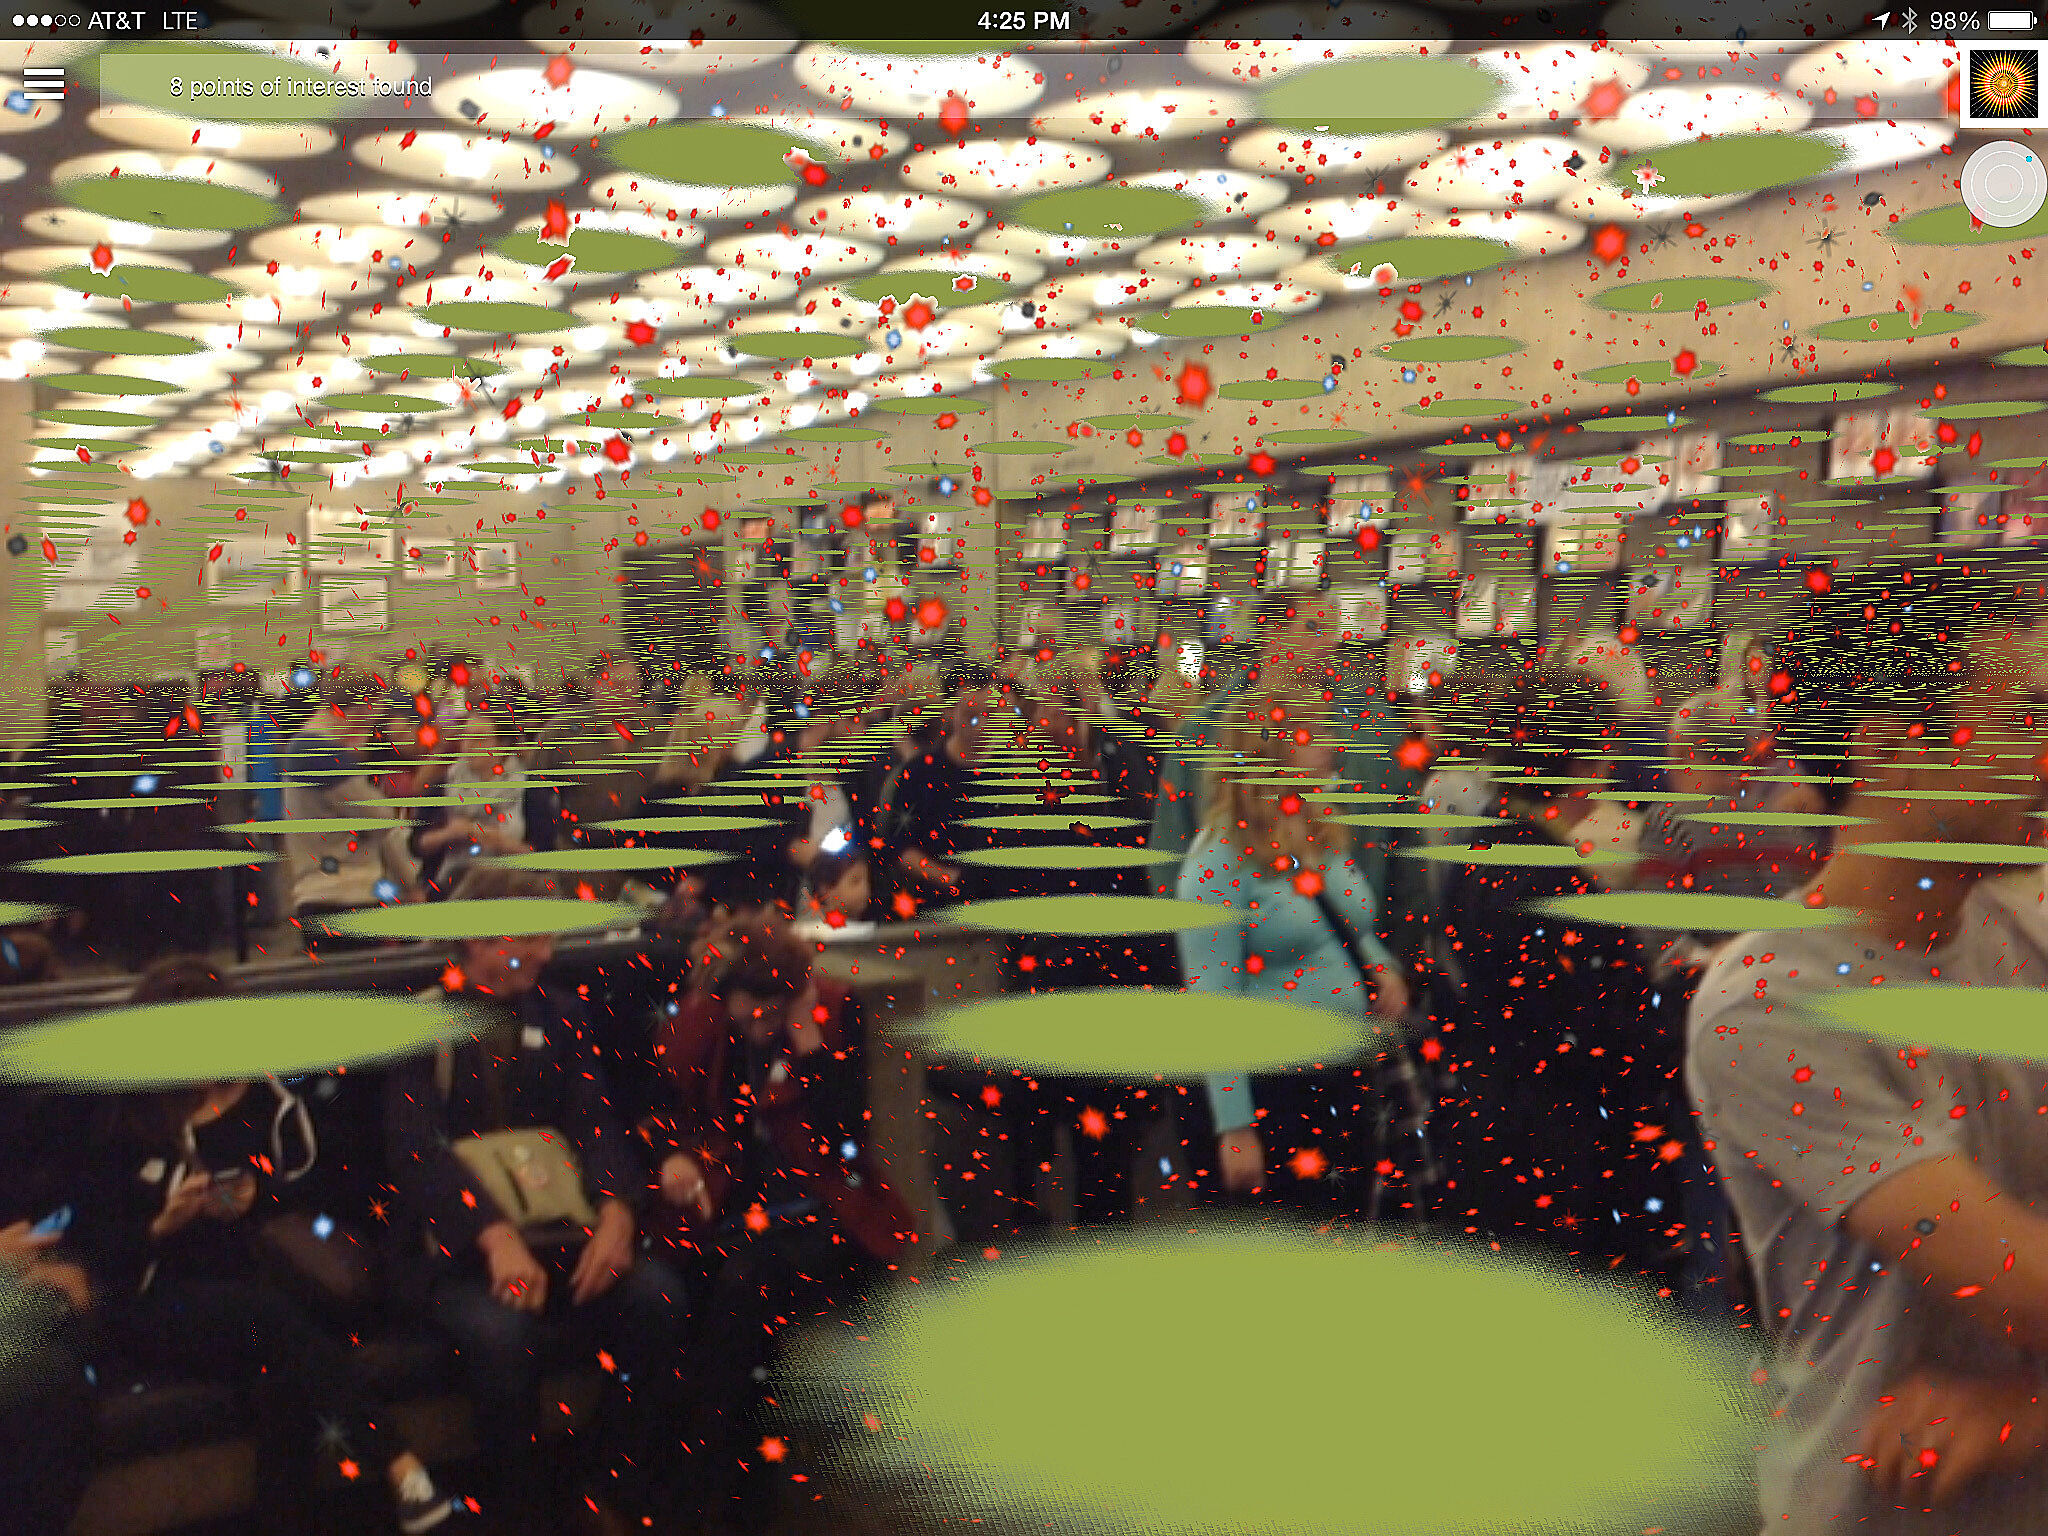 Whitney lobby with red and green dots overlaid.